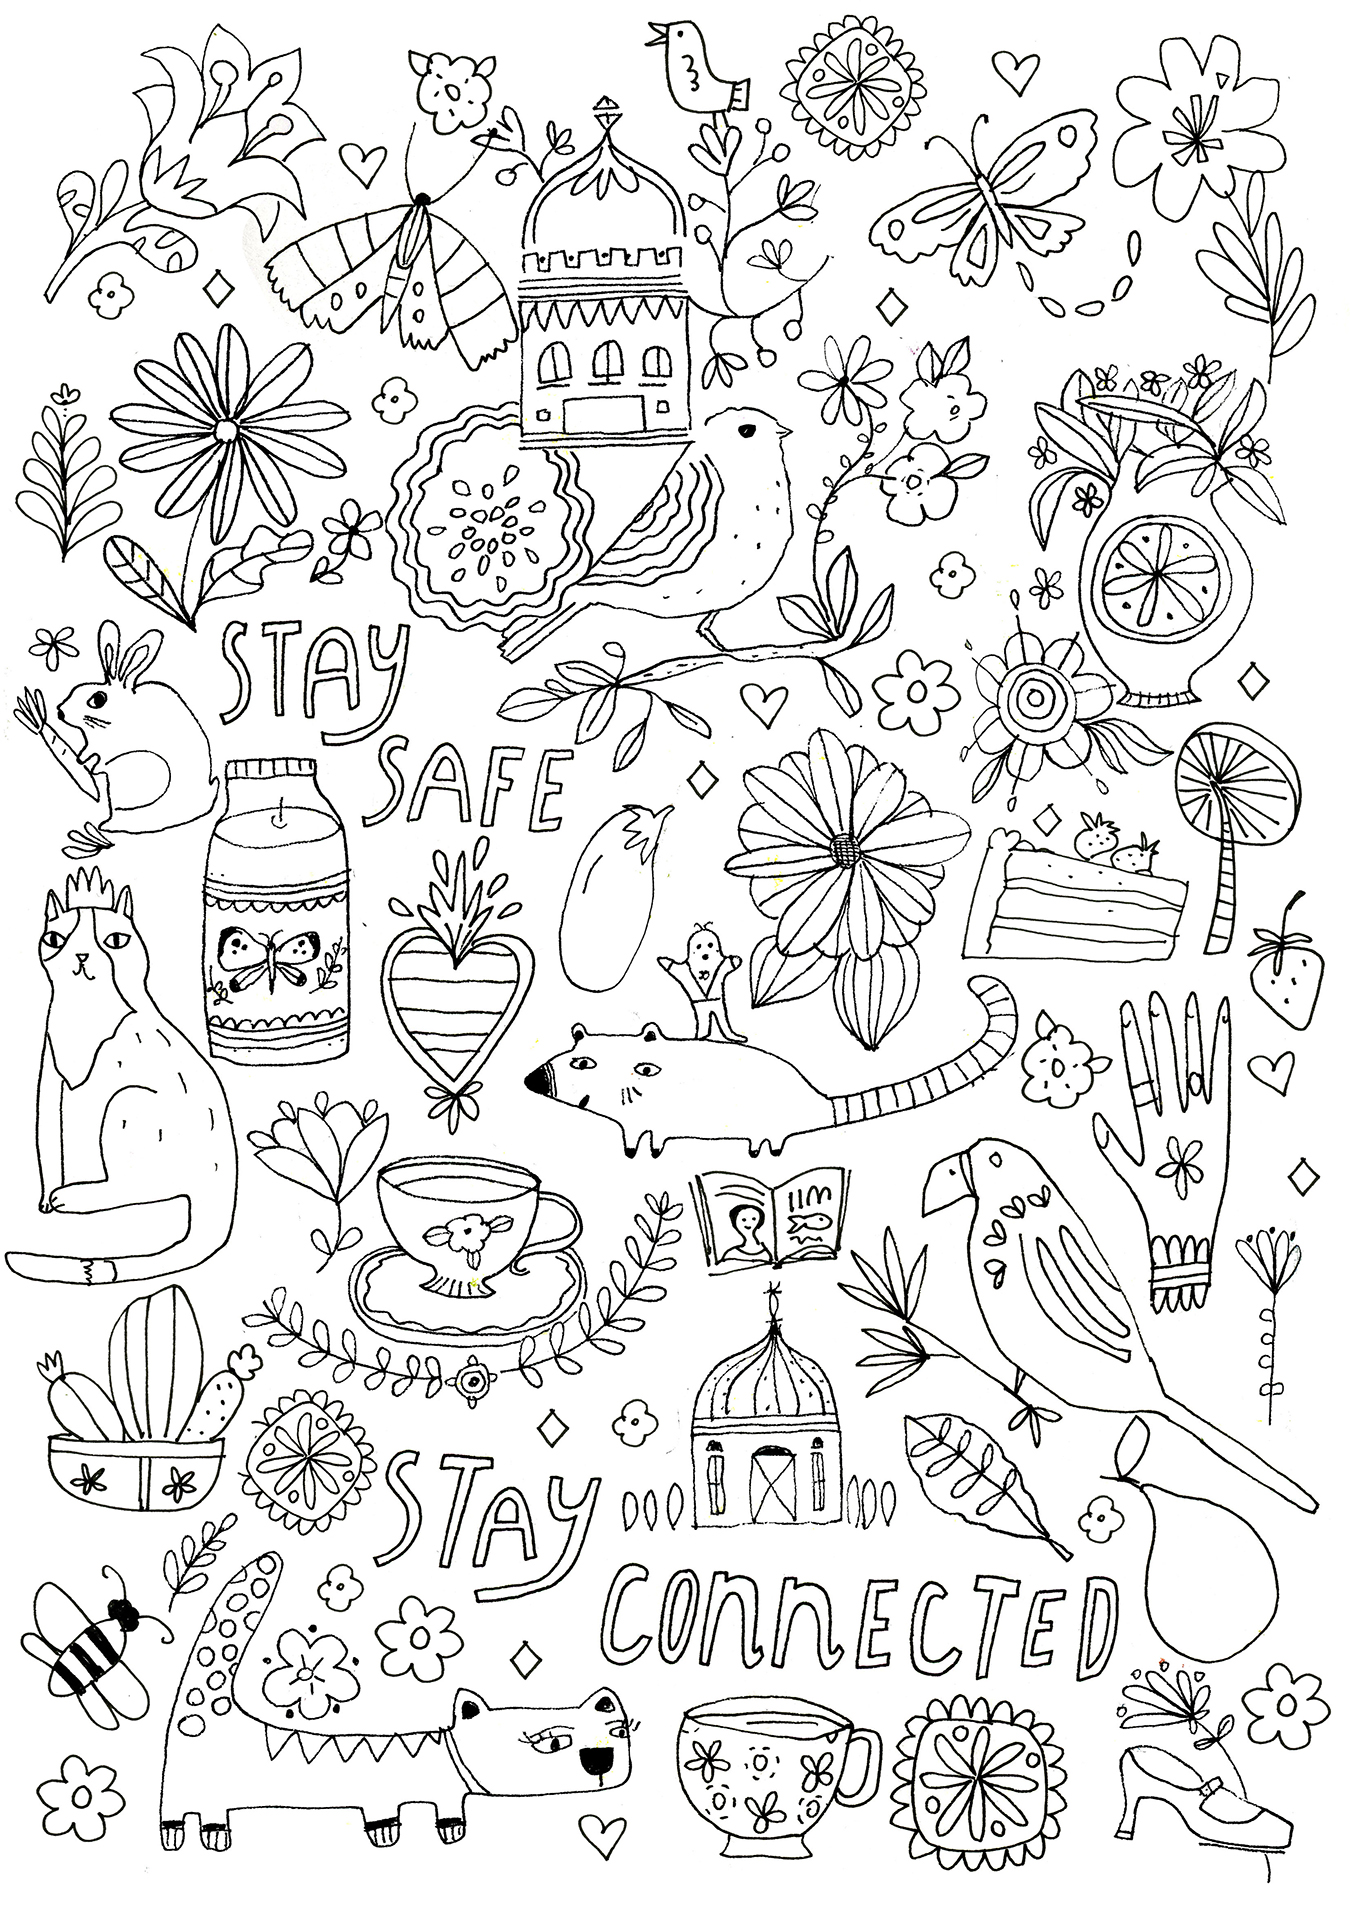 Comforting coloring pages - Flow Magazine